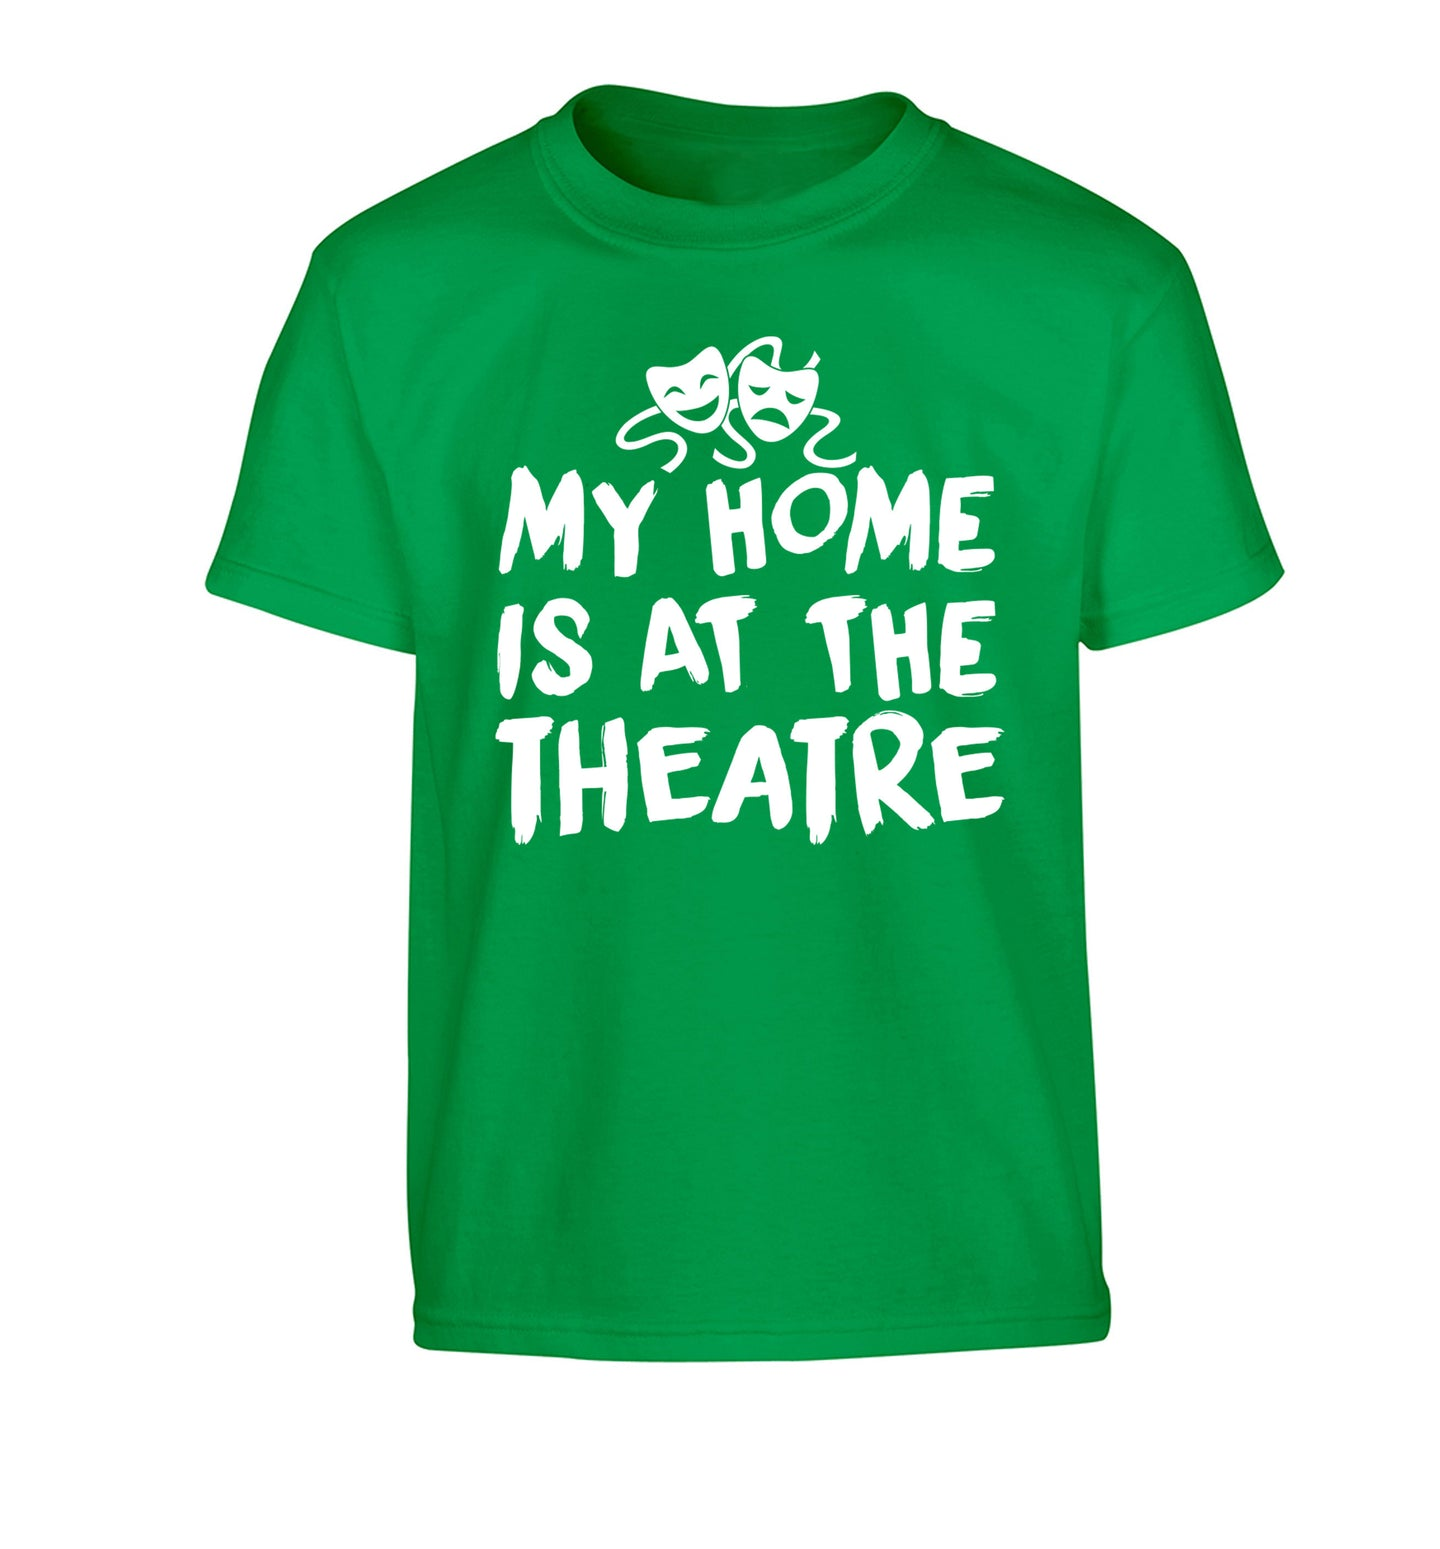 My home is at the theatre Children's green Tshirt 12-14 Years